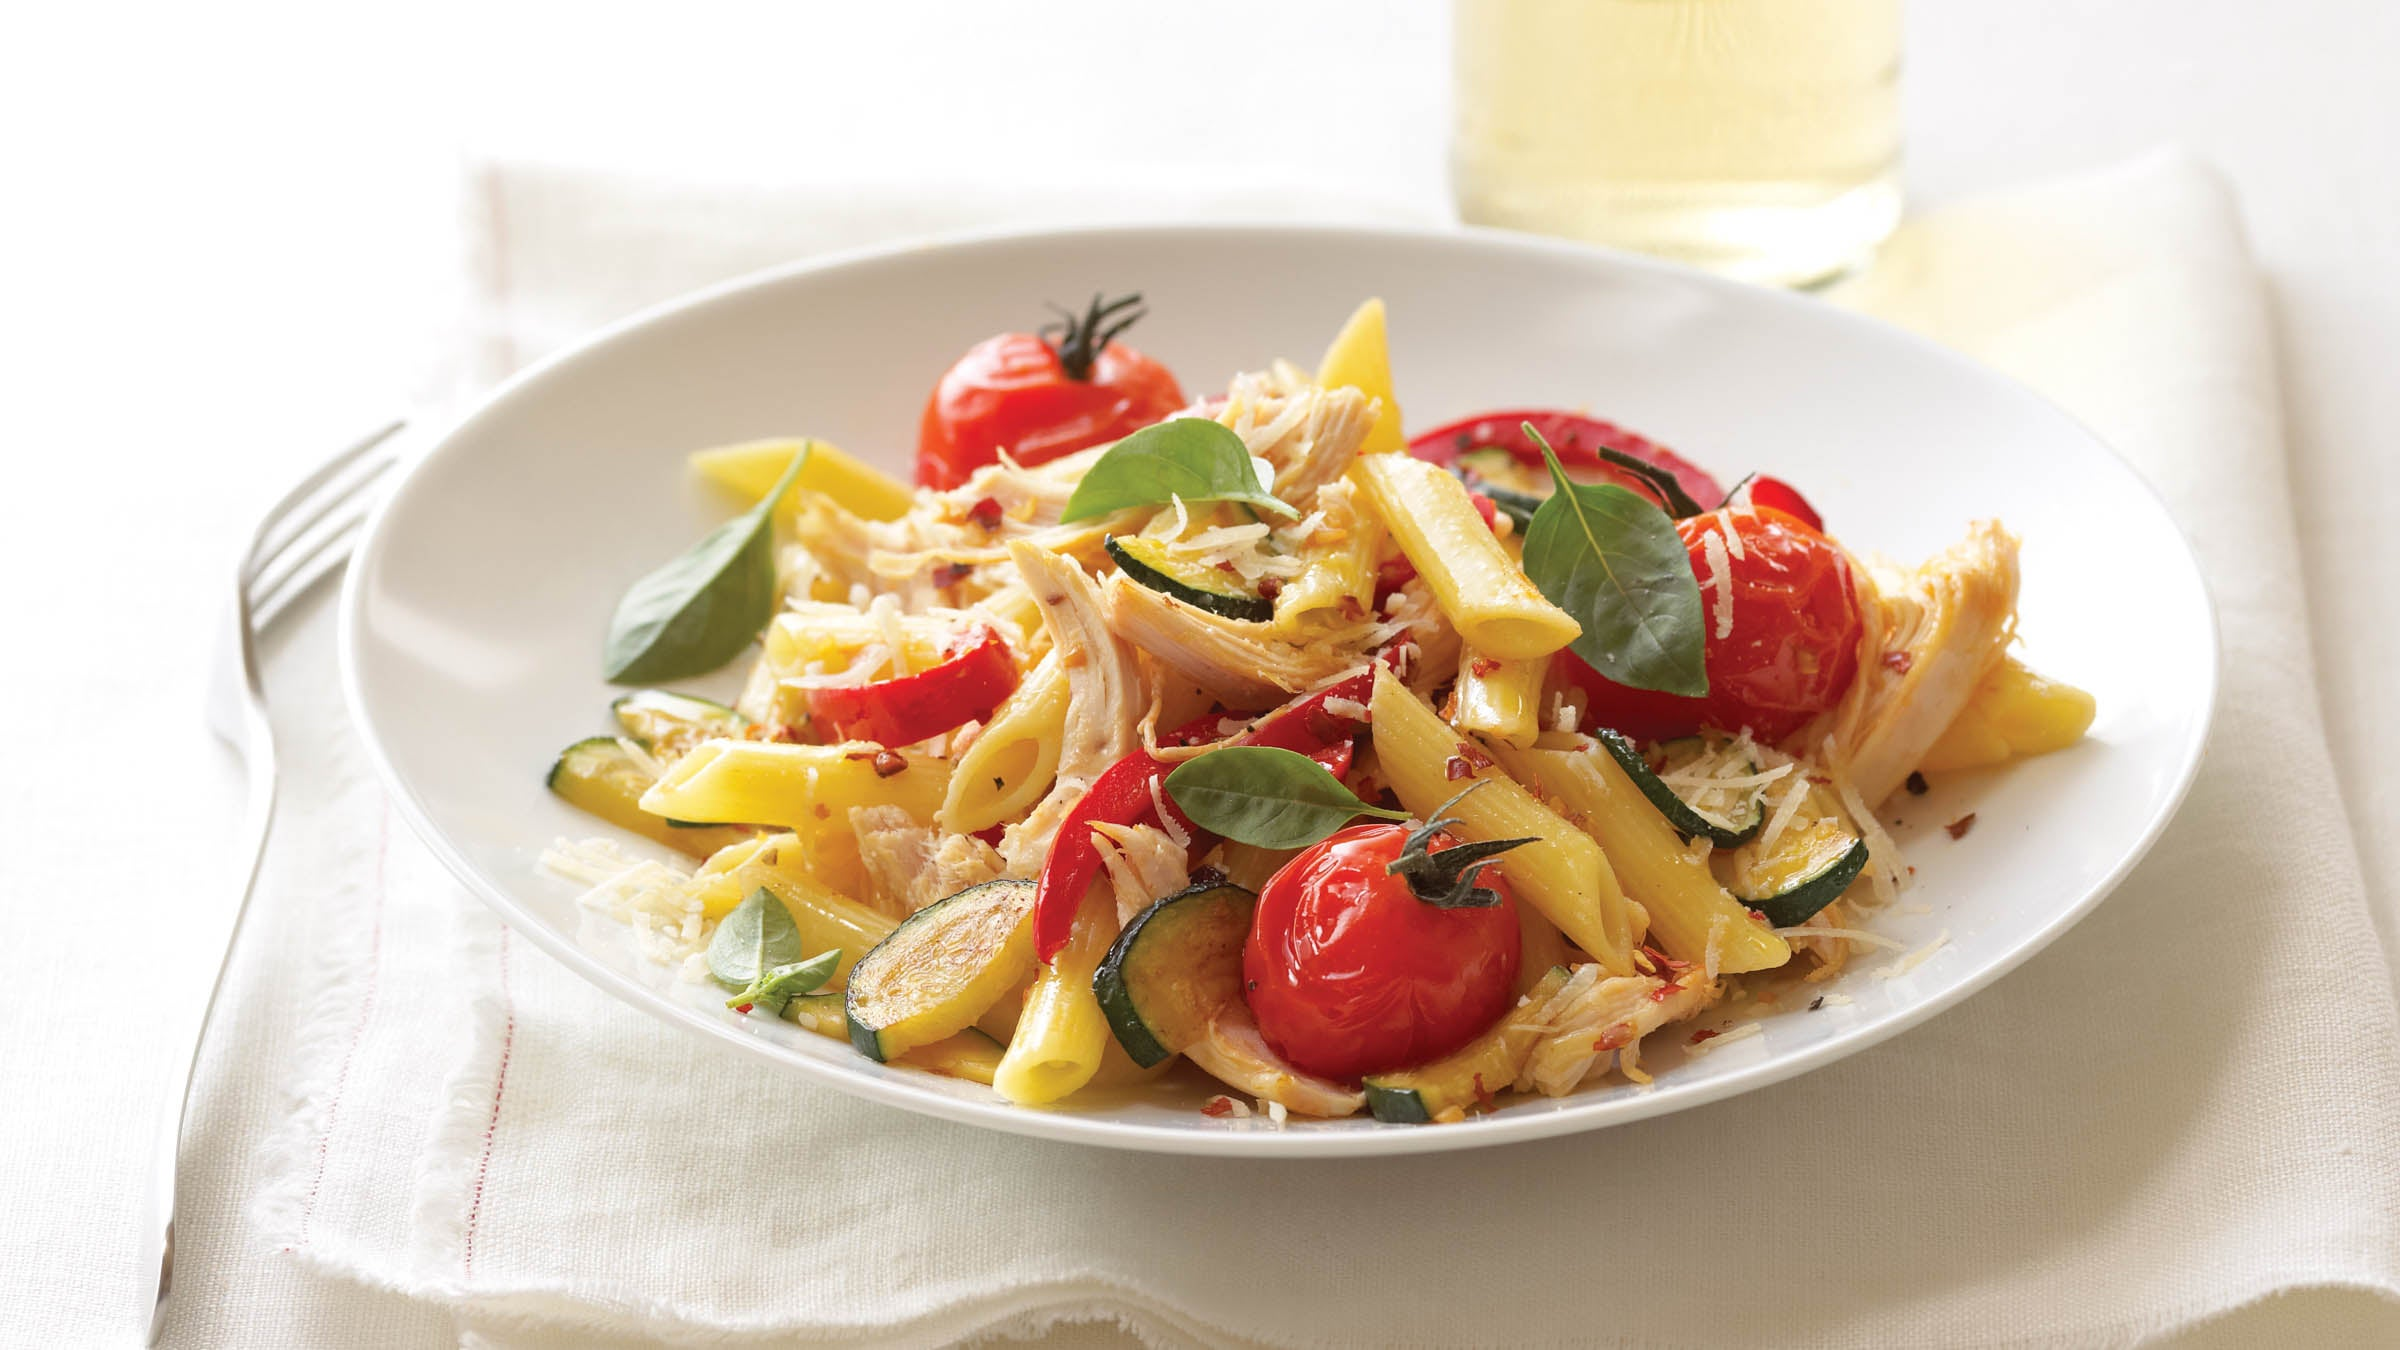 Pasta with Basil Tomatoes, Parmesan and Zucchini